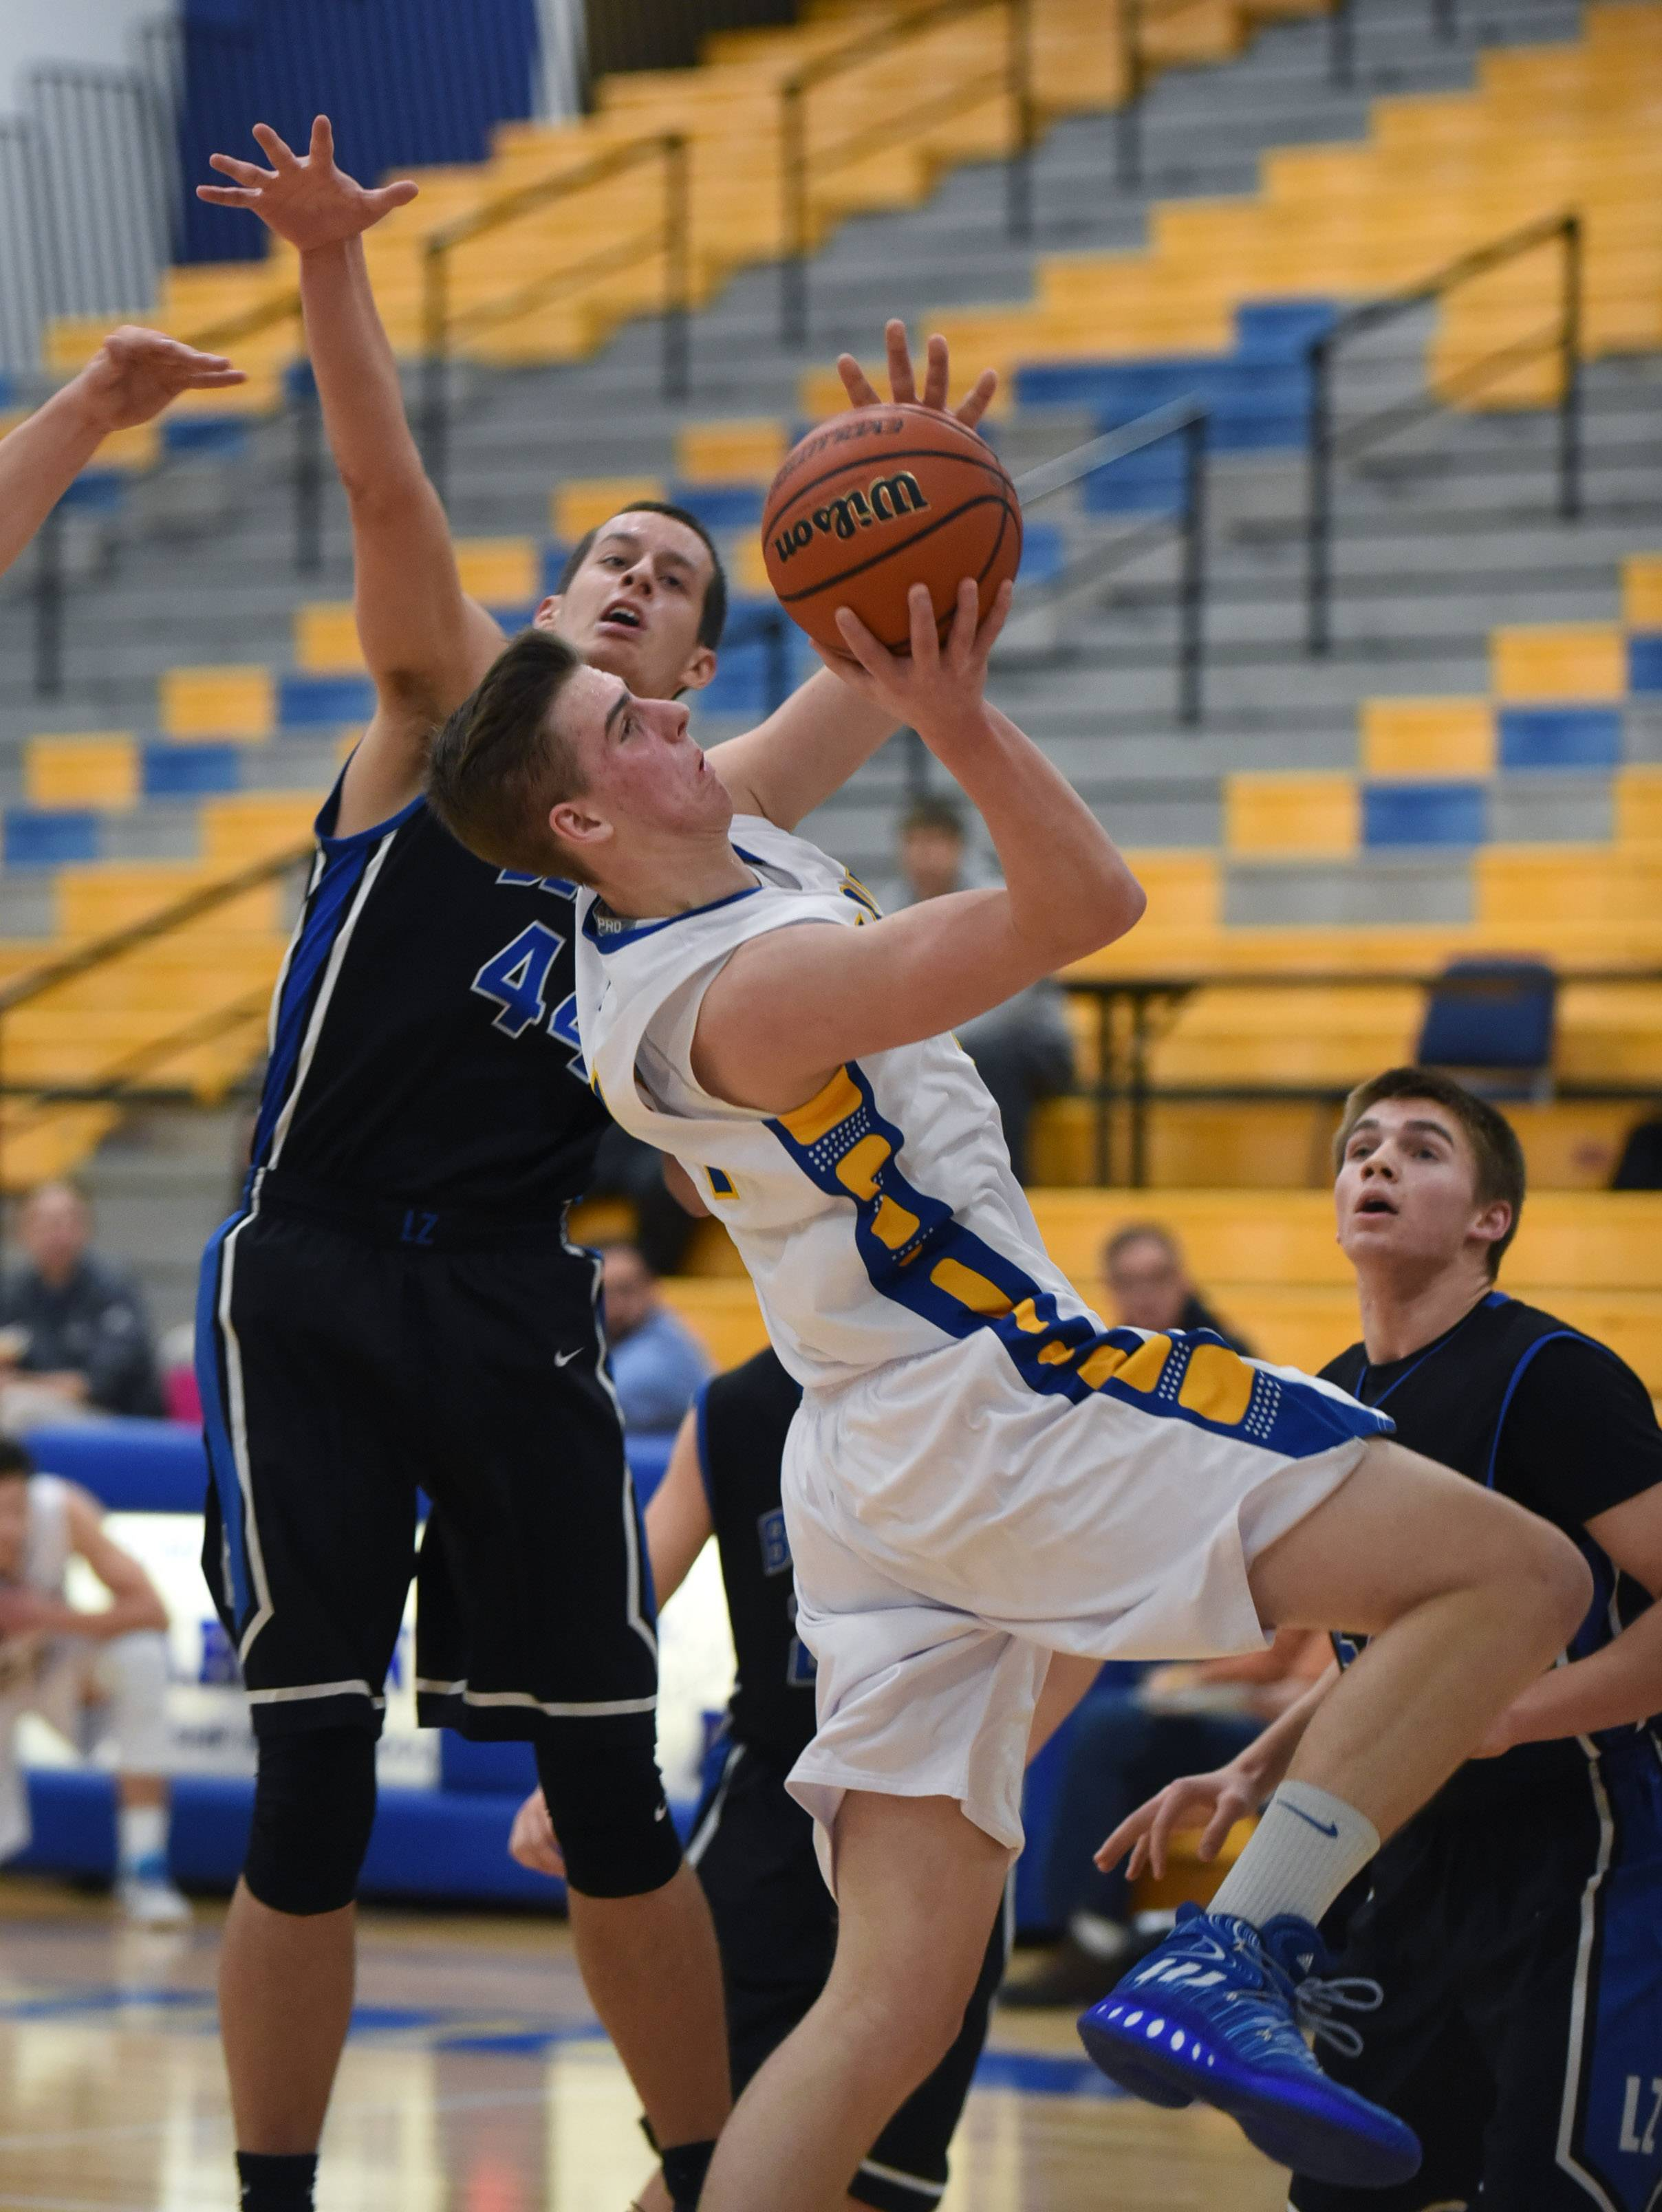 Warren's Declan O'Connor takes a shot under pressure from Lake Zurich's Chris Trybula (44) during Thursday's boys basketball game in Gurnee.